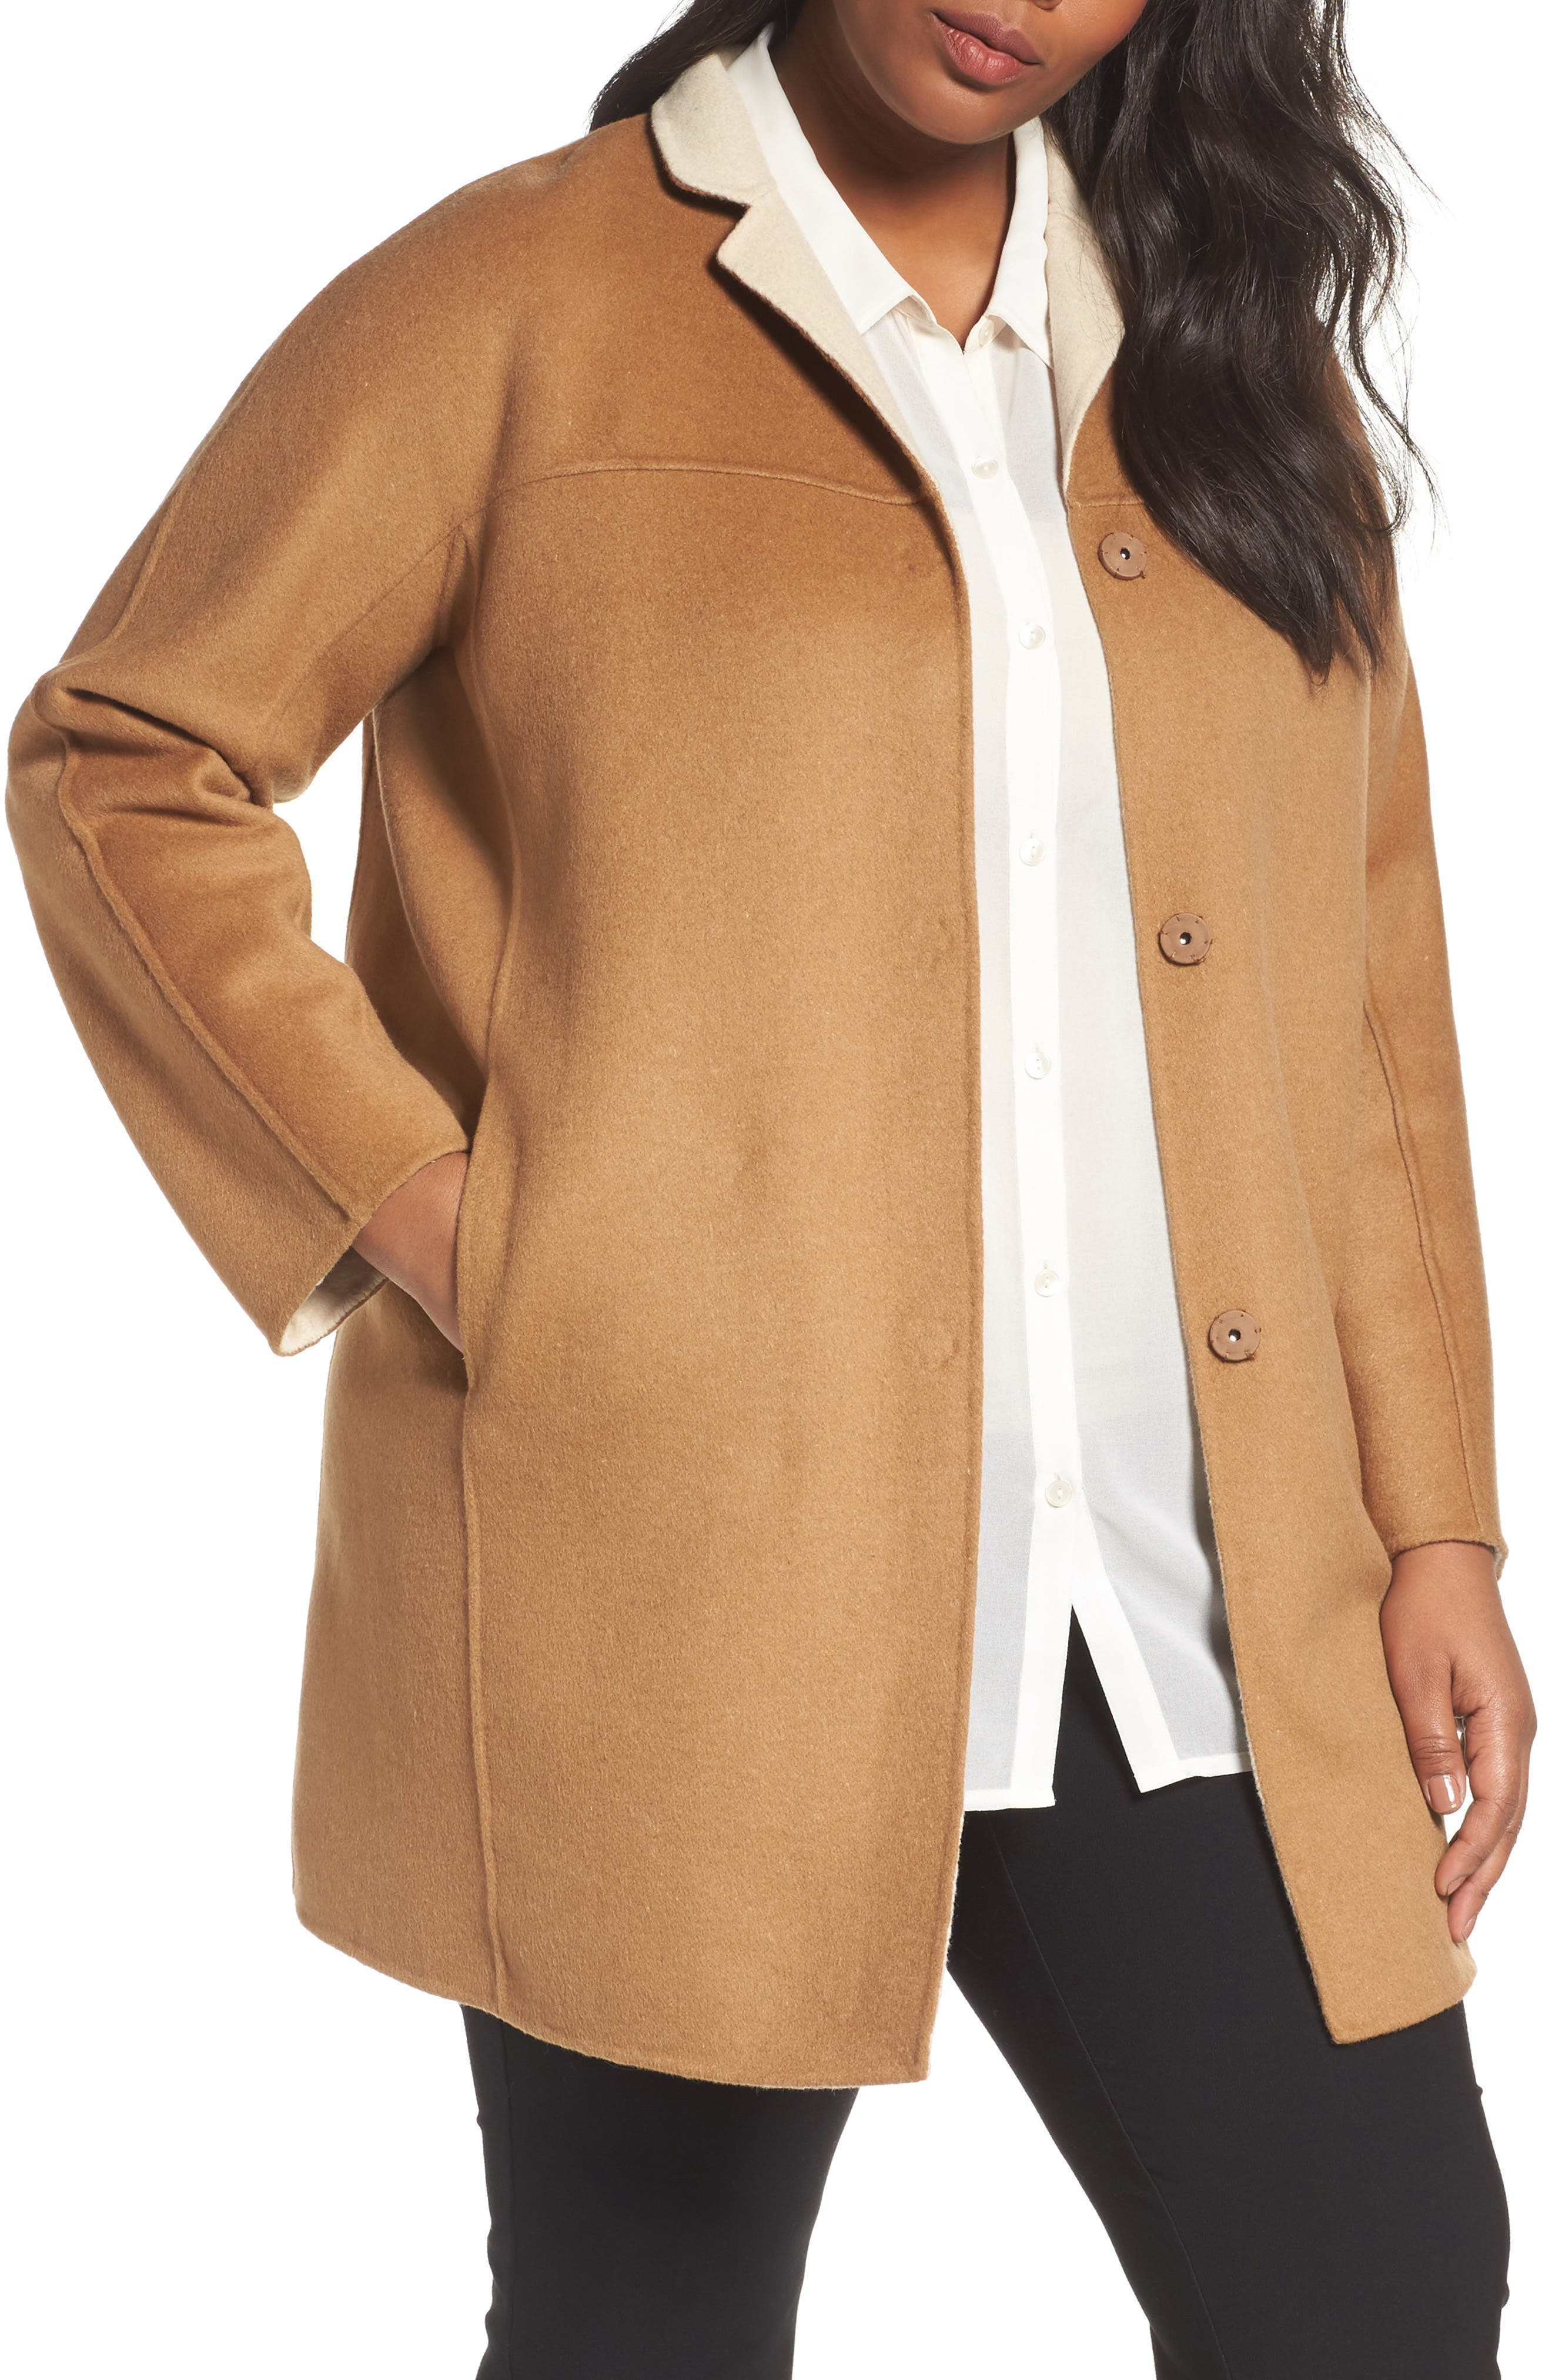 Alternate Image 1 Selected - Persona by Marina Rinaldi Nina Double Face Wool Blend Coat (Plus Size)